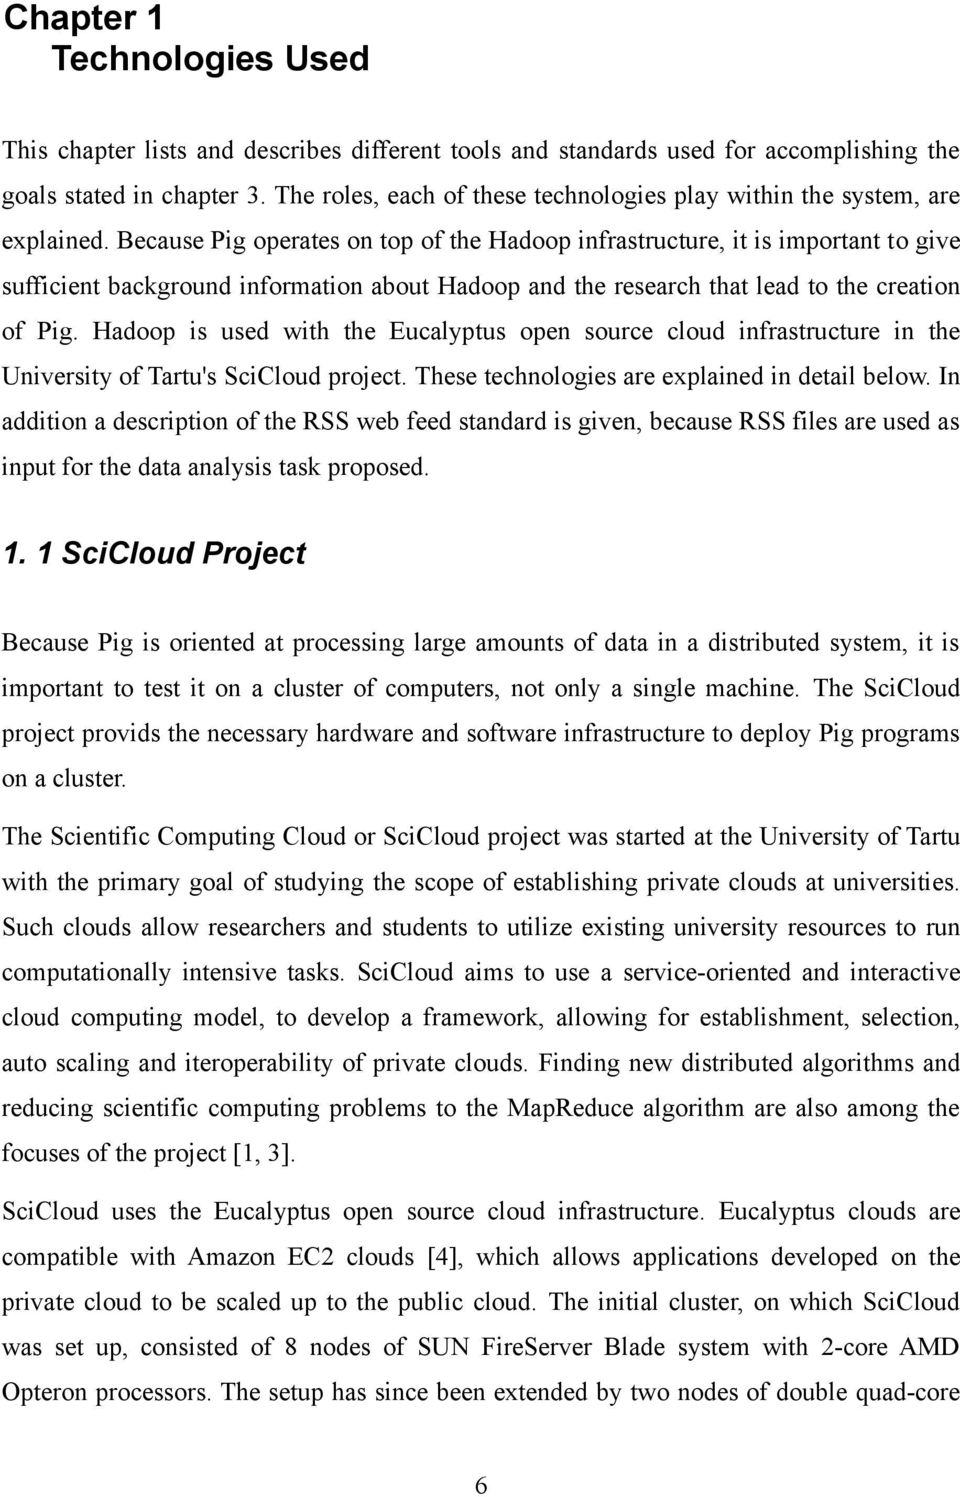 Because Pig operates on top of the Hadoop infrastructure, it is important to give sufficient background information about Hadoop and the research that lead to the creation of Pig.